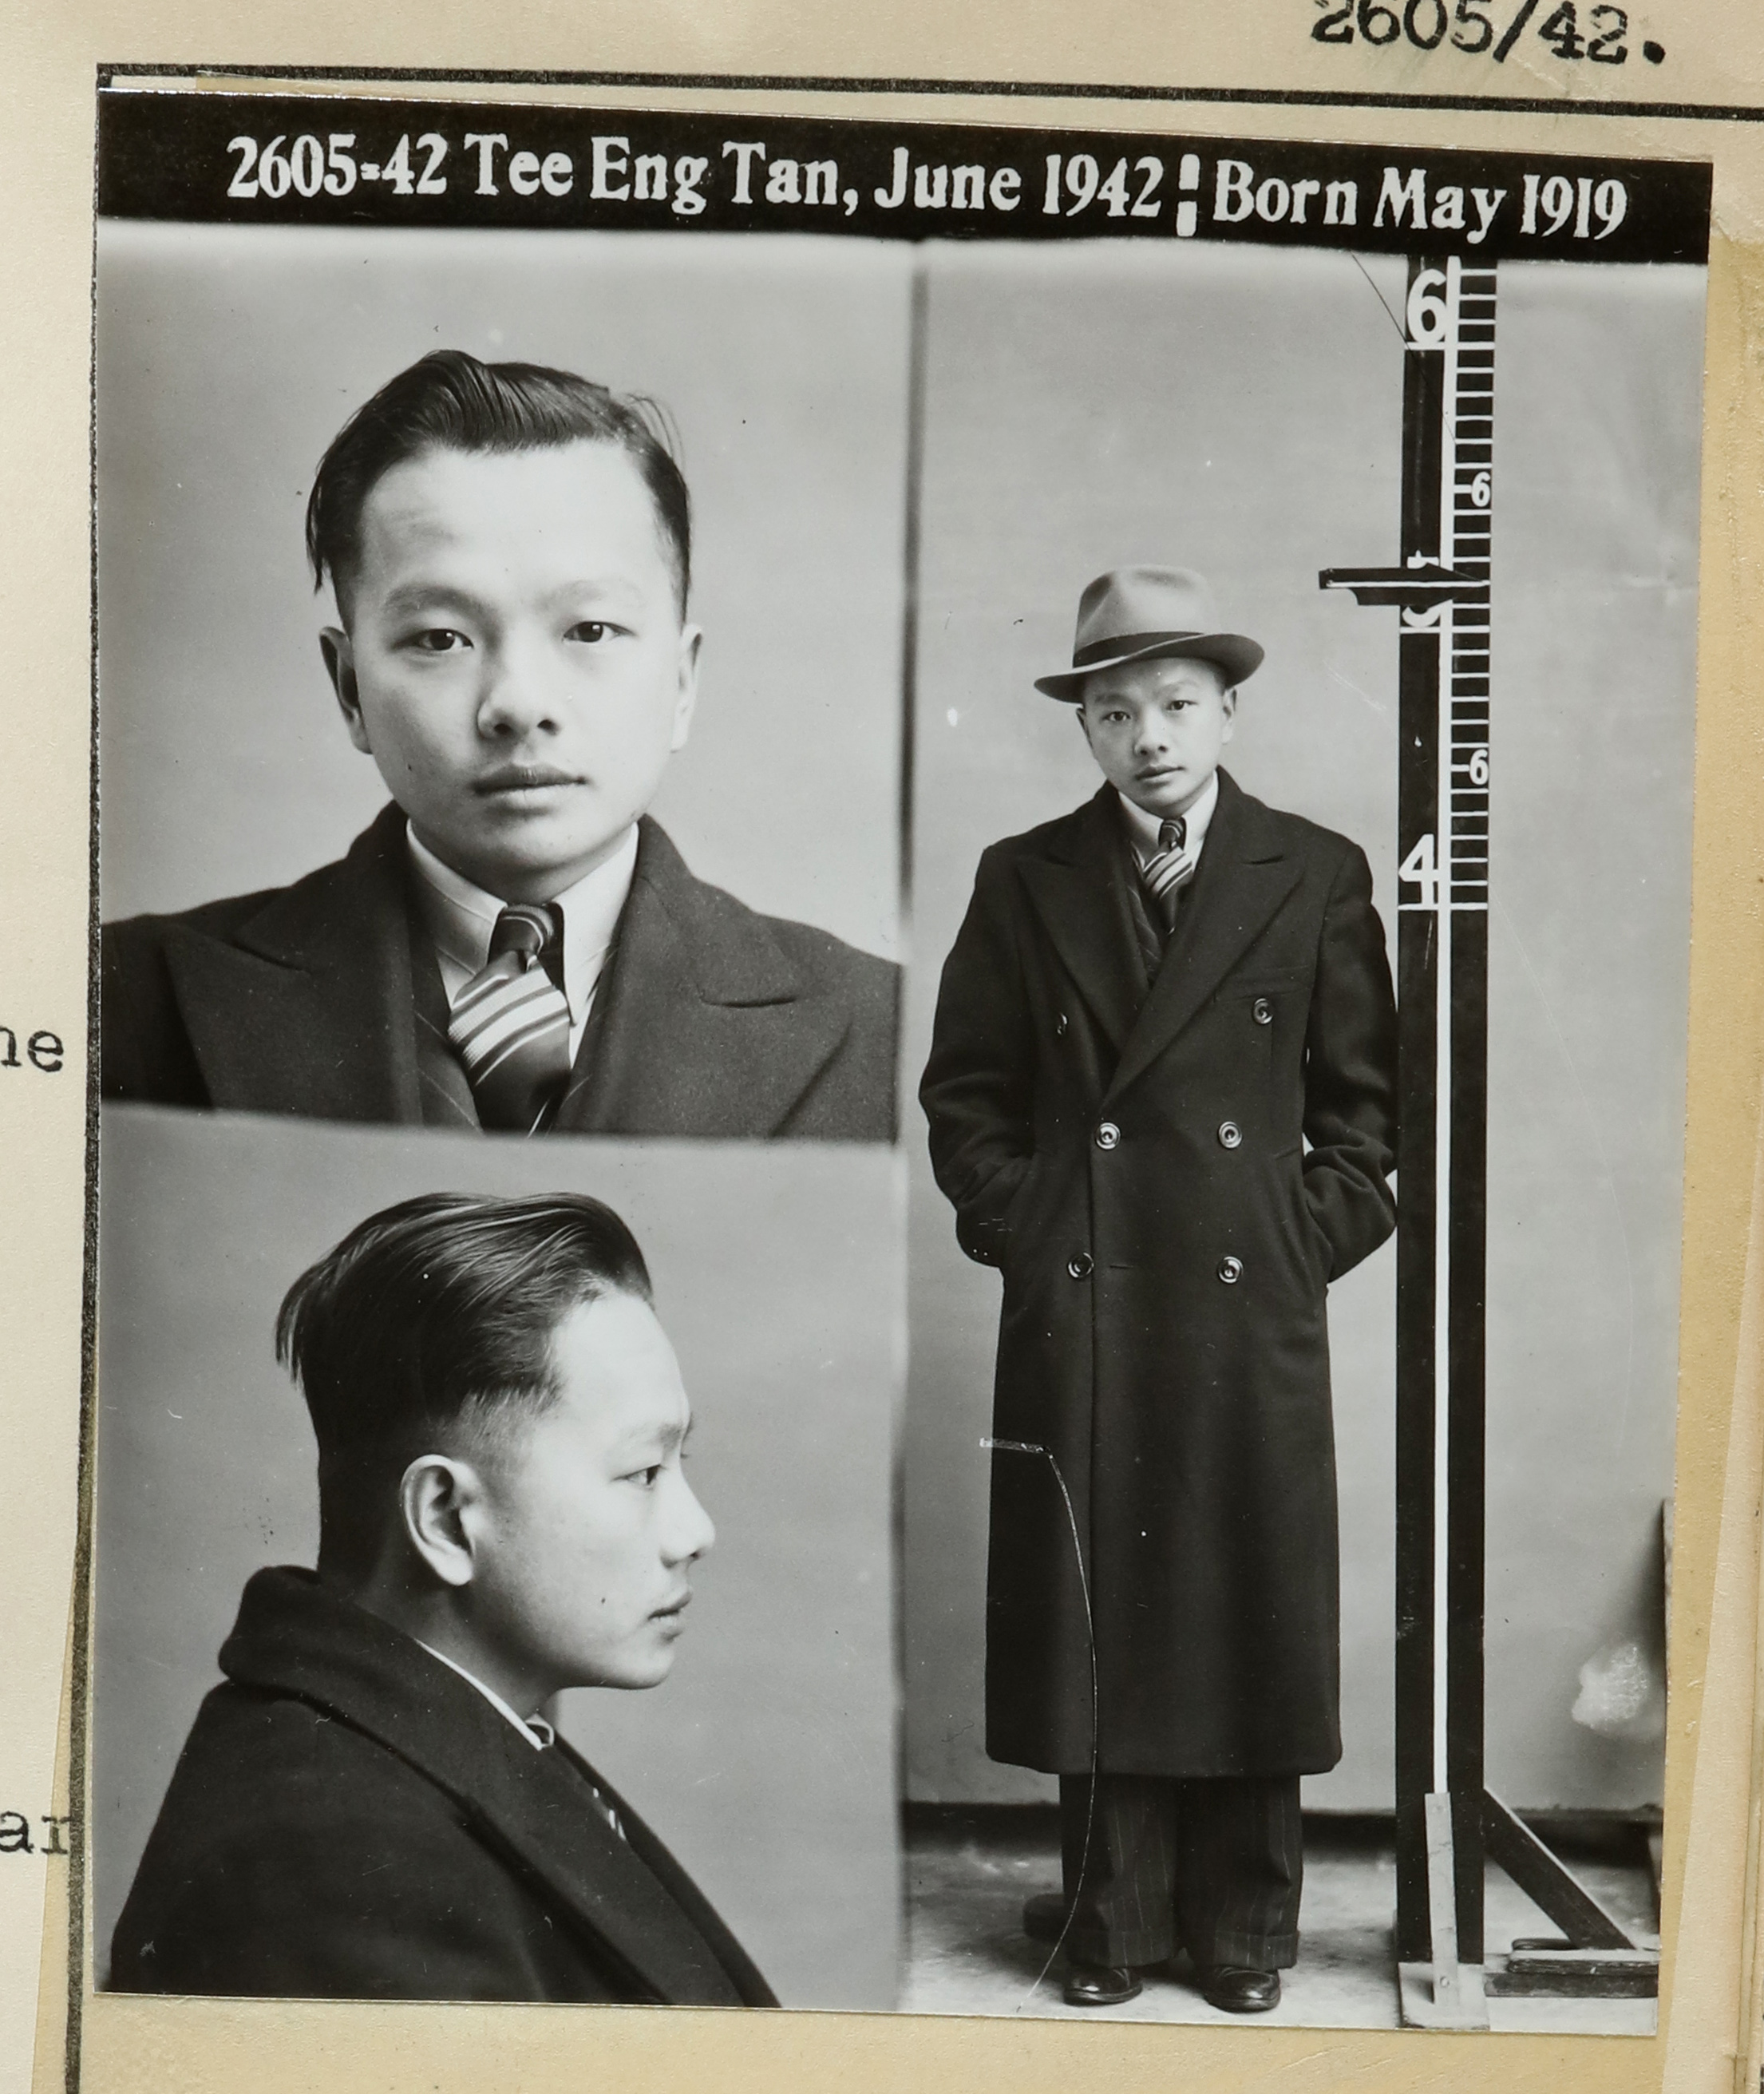 Tee Eng Tan June 1942